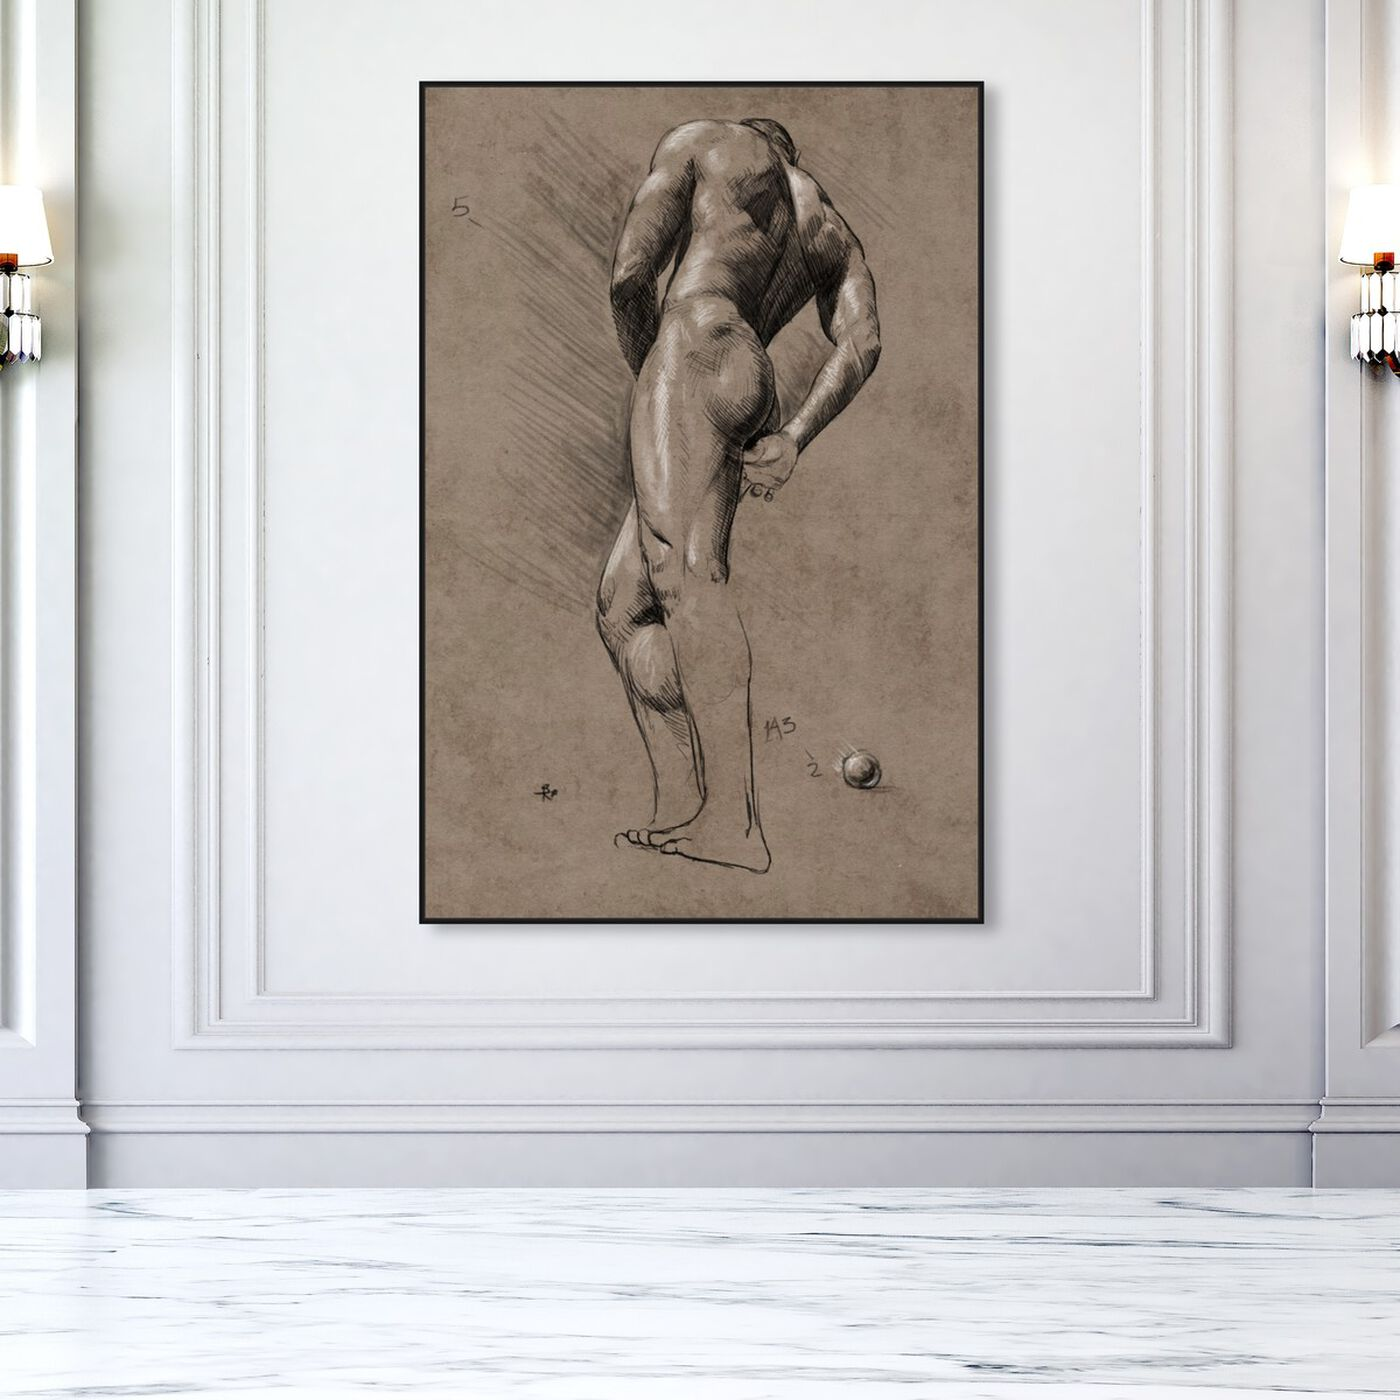 Hanging view of Male Figure Study featuring people and portraits and nudes art.